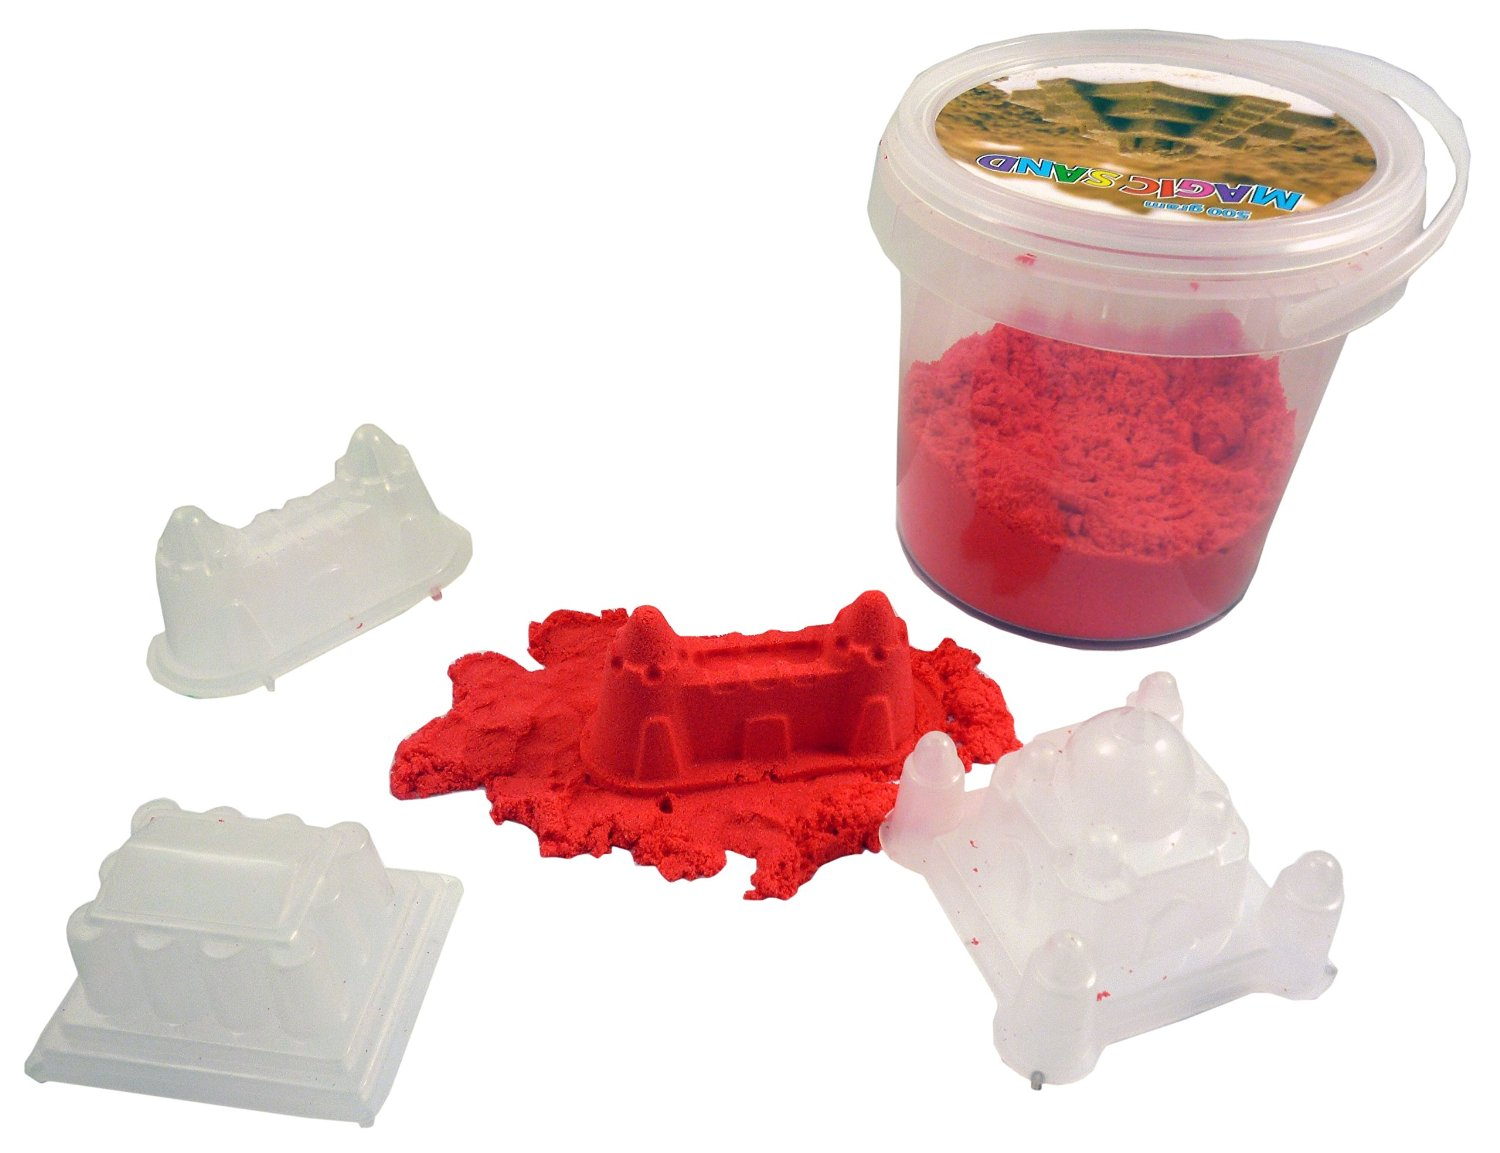 RED Magic Sand 500g With 3 Castle Moulds- Sculpture, Mould and Play [Toy]